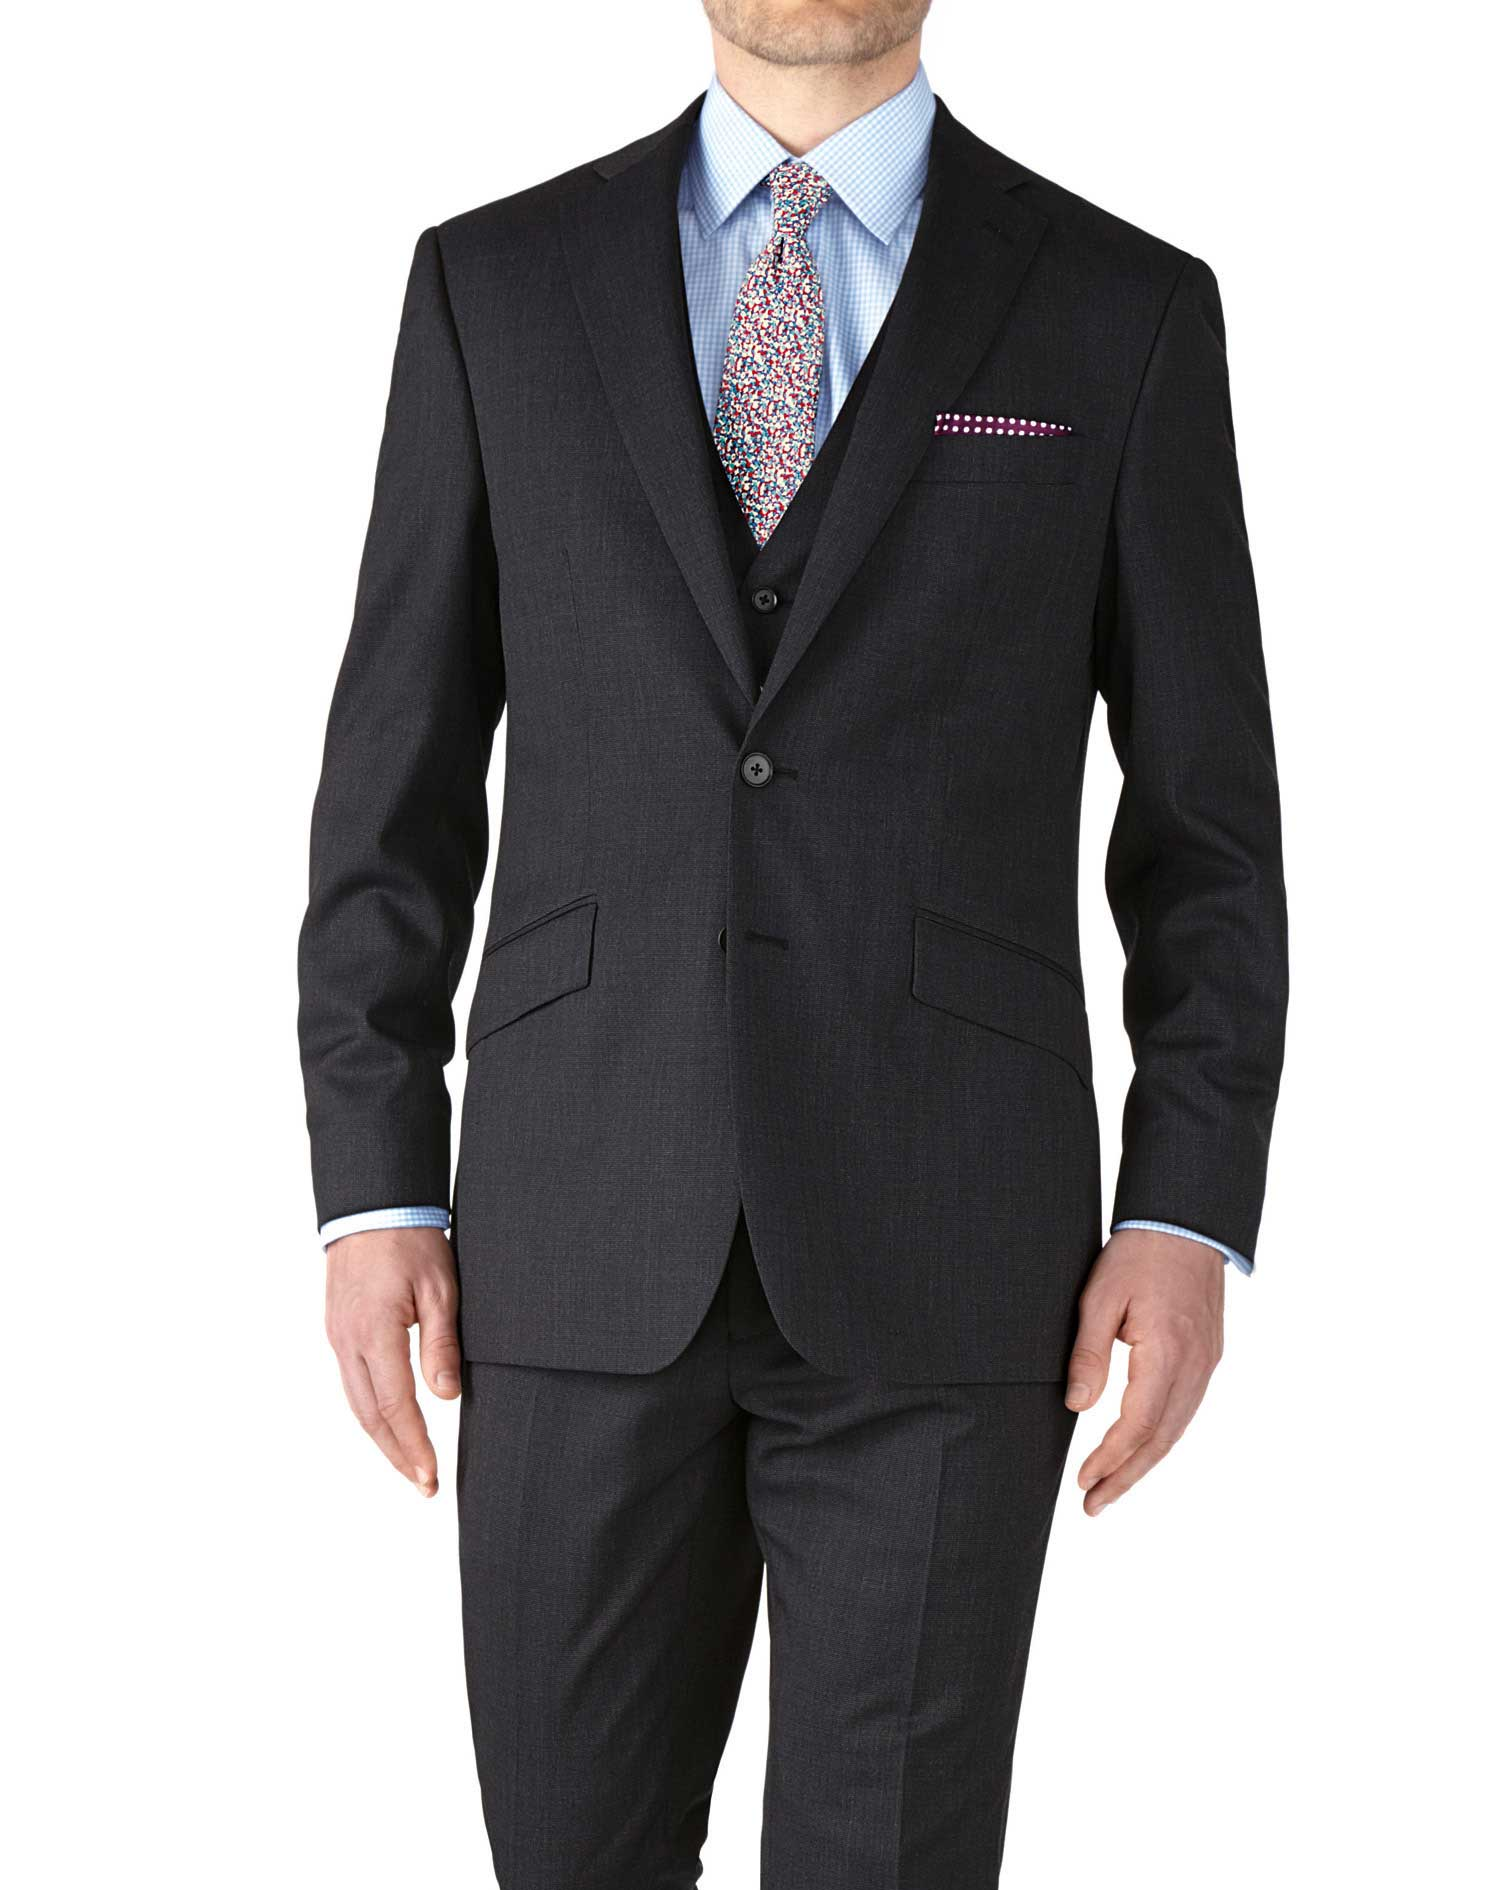 Charcoal Slim Fit End-On-End Business Suit Wool Jacket Size 36 Regular by Charles Tyrwhitt